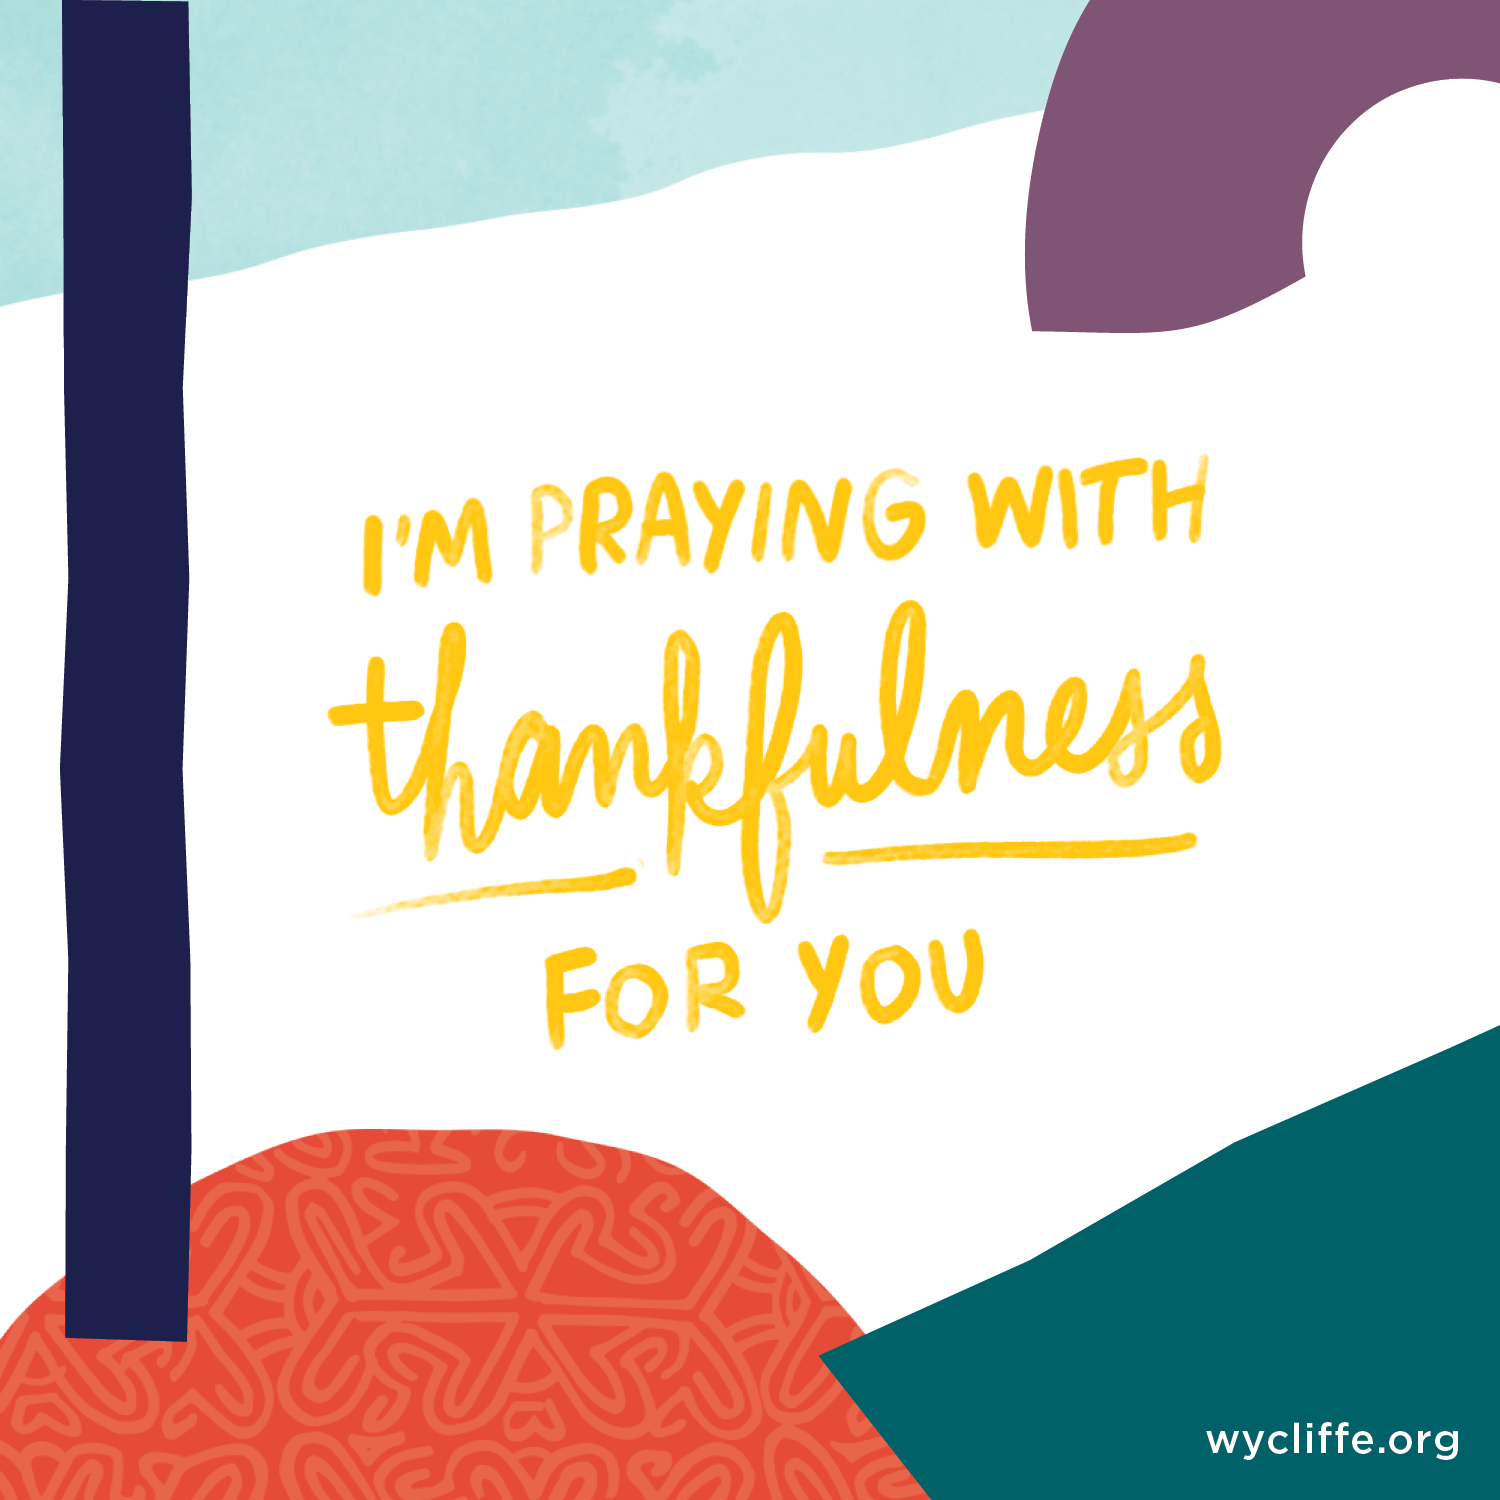 I'm praying with thankfulness for you